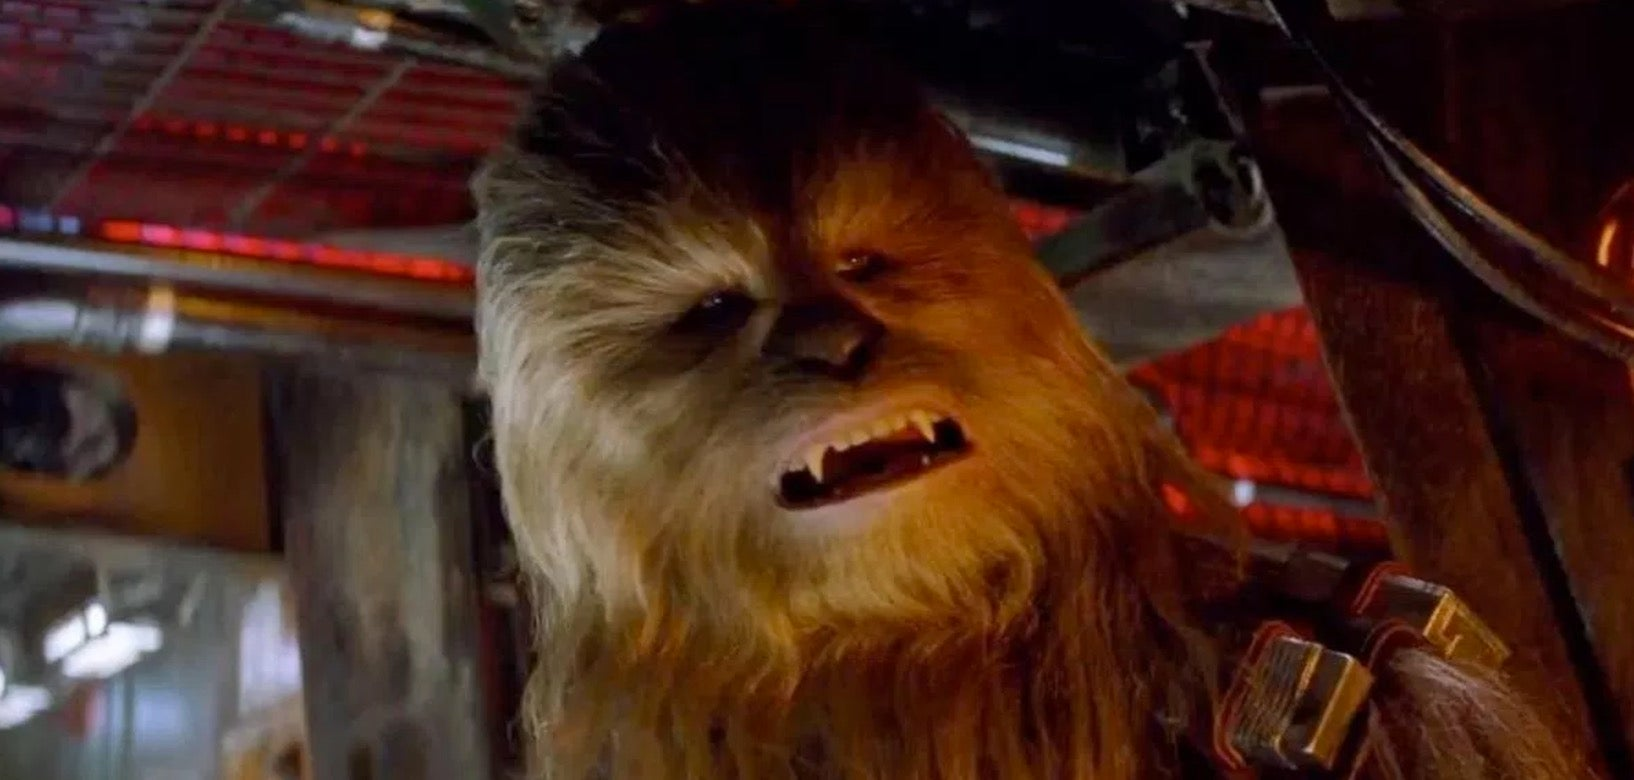 The New Chewbacca Pens A Heartfelt Letter To Star Wars Fans